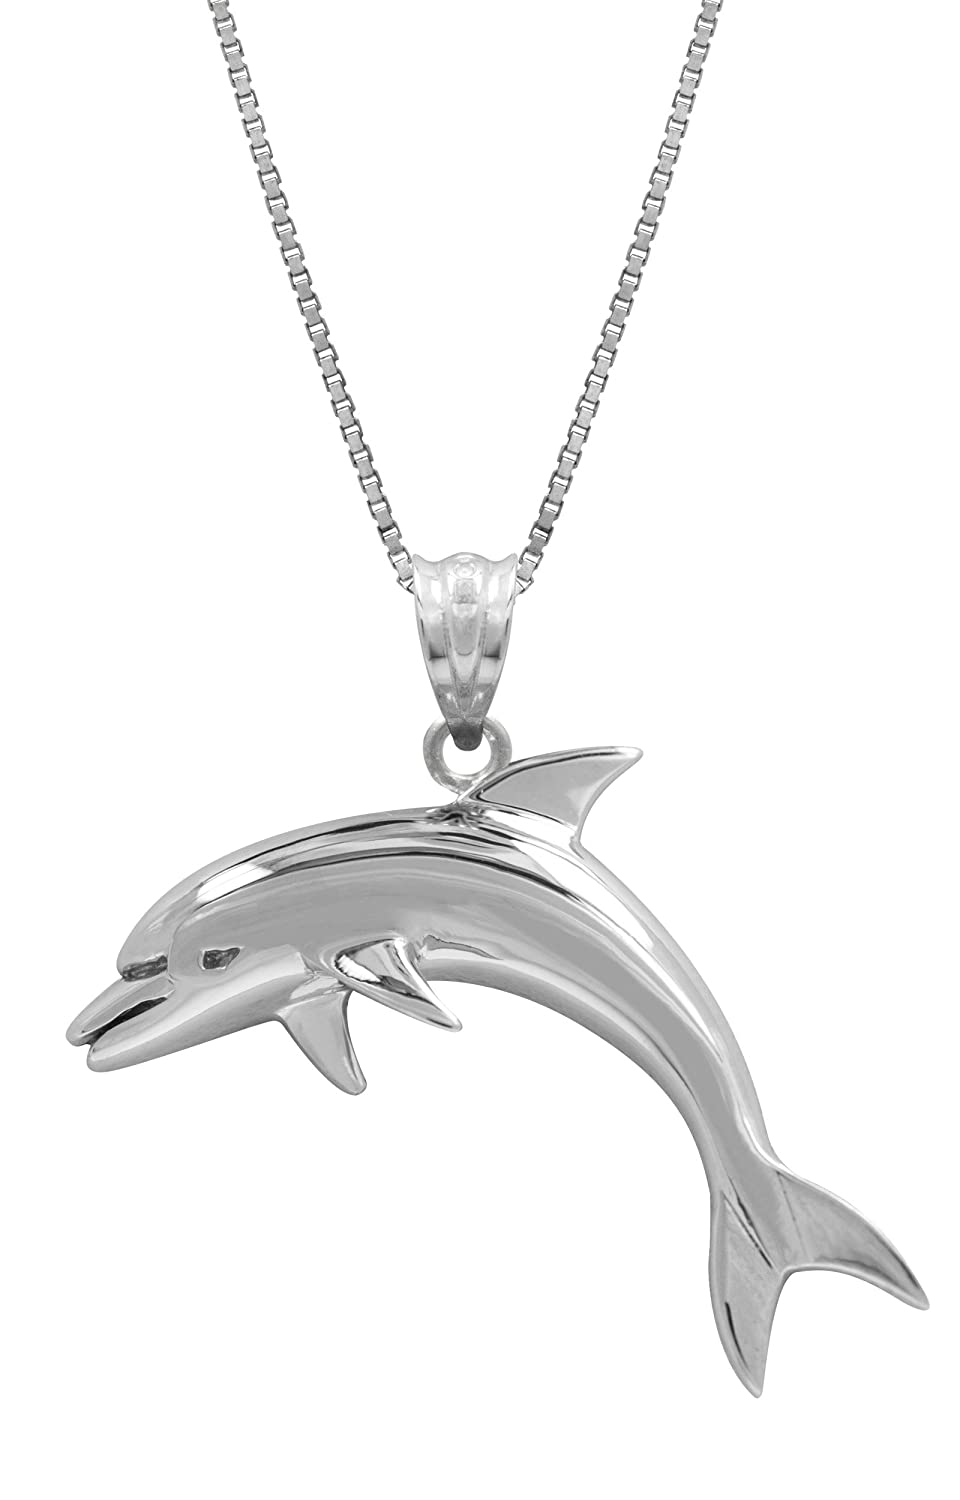 id y necklaces ruby dolphin pendant sale j carrera gold diamond l jewelry for necklace org